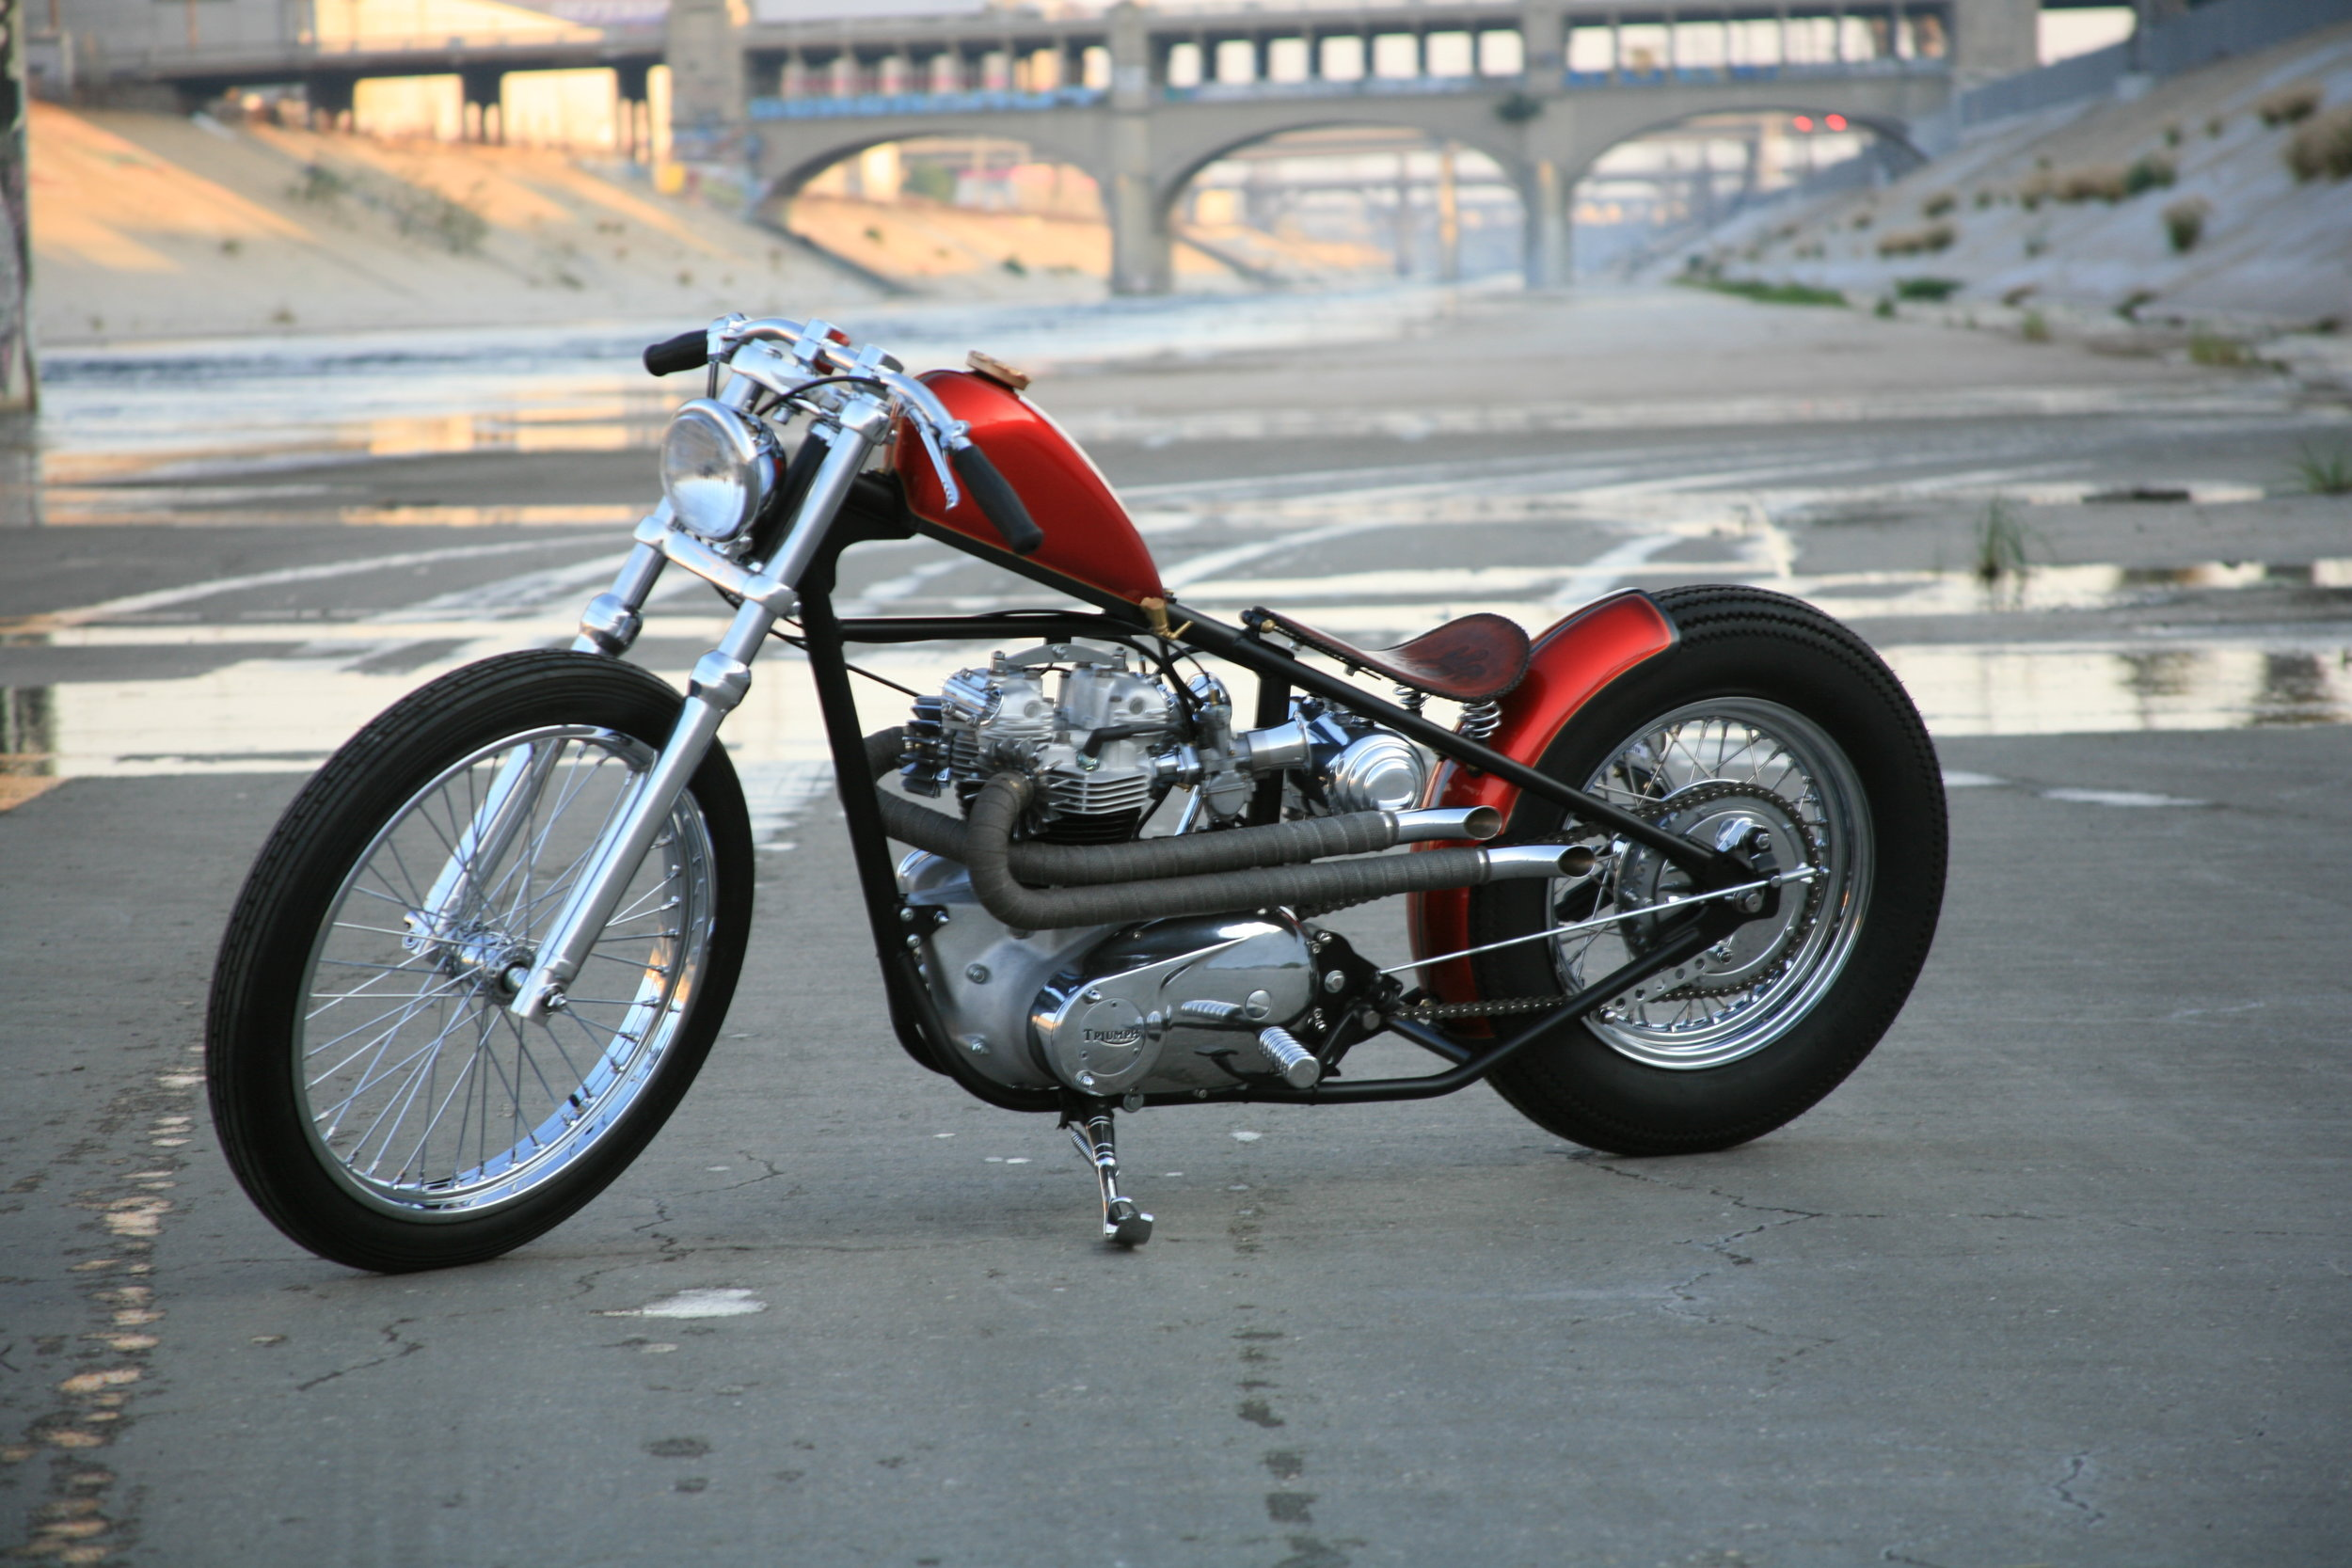 Photo of a custom Chopper taken in the LA river